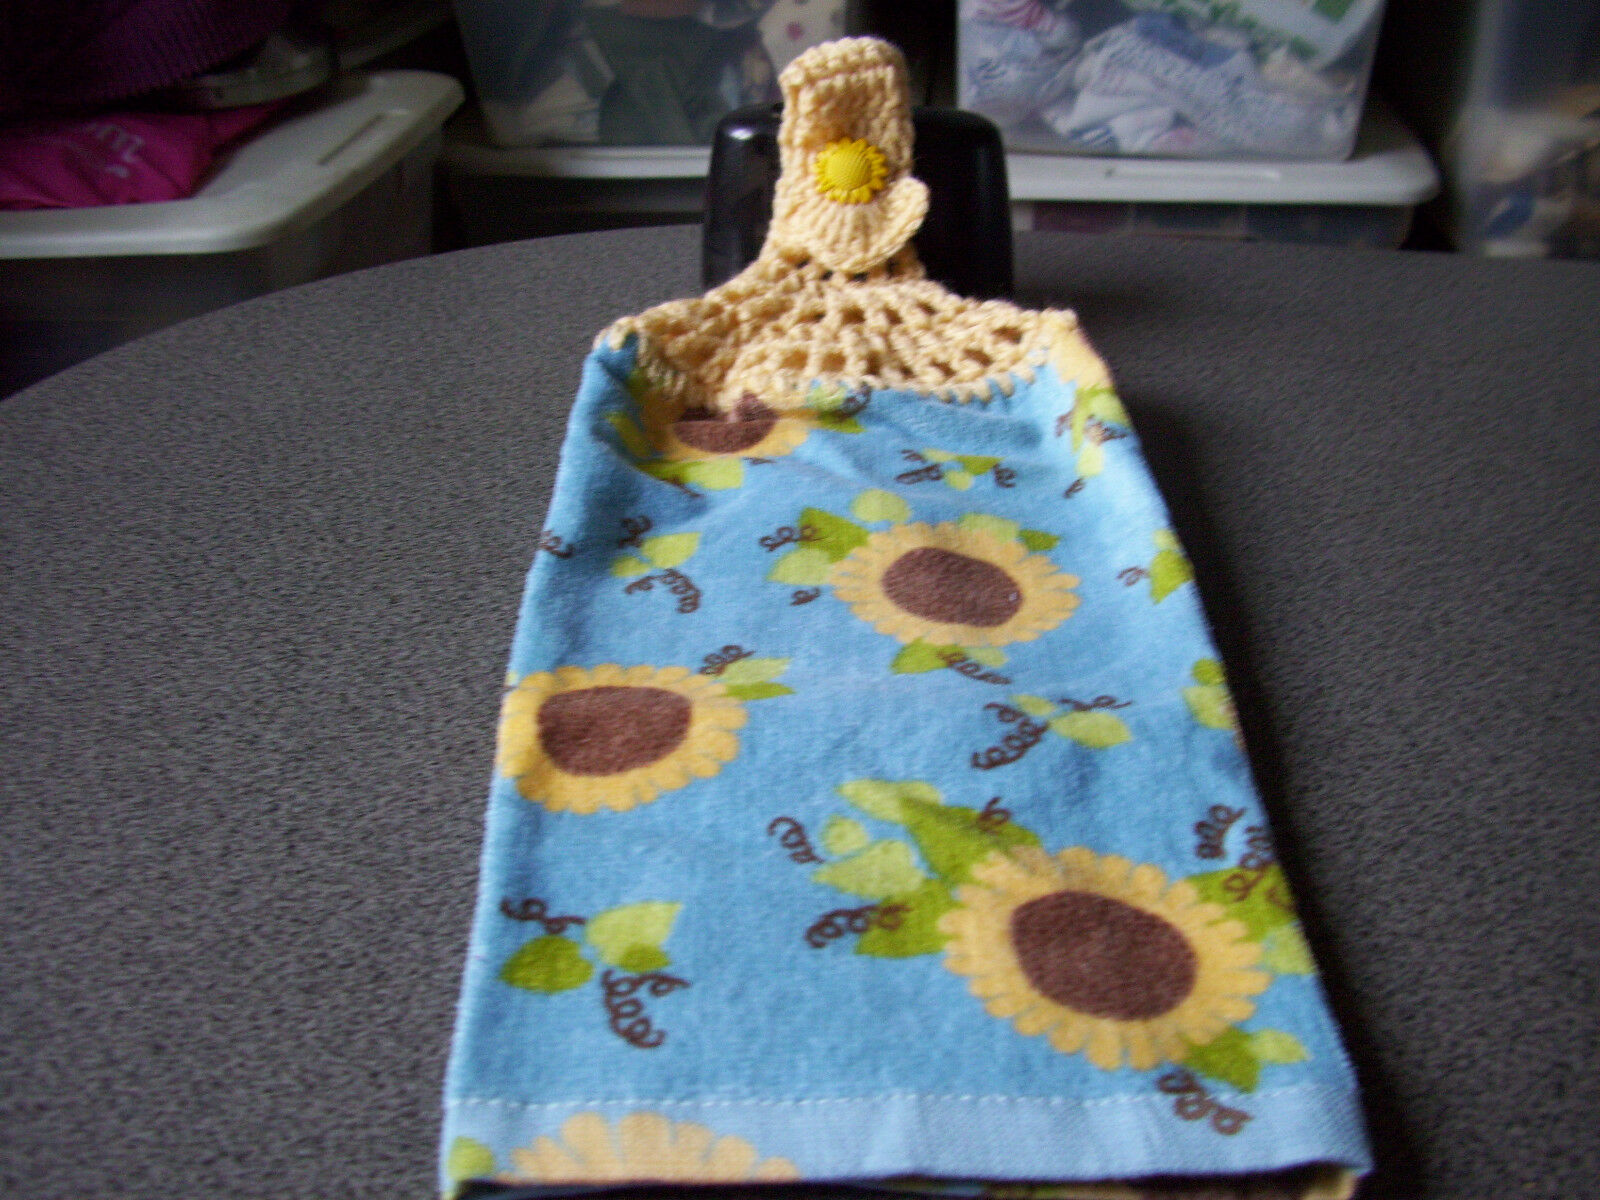 SUNFLOWER SUNFLOWERS BLUE Hanging Crochet Top Kitchen Towel - $4.99 ...